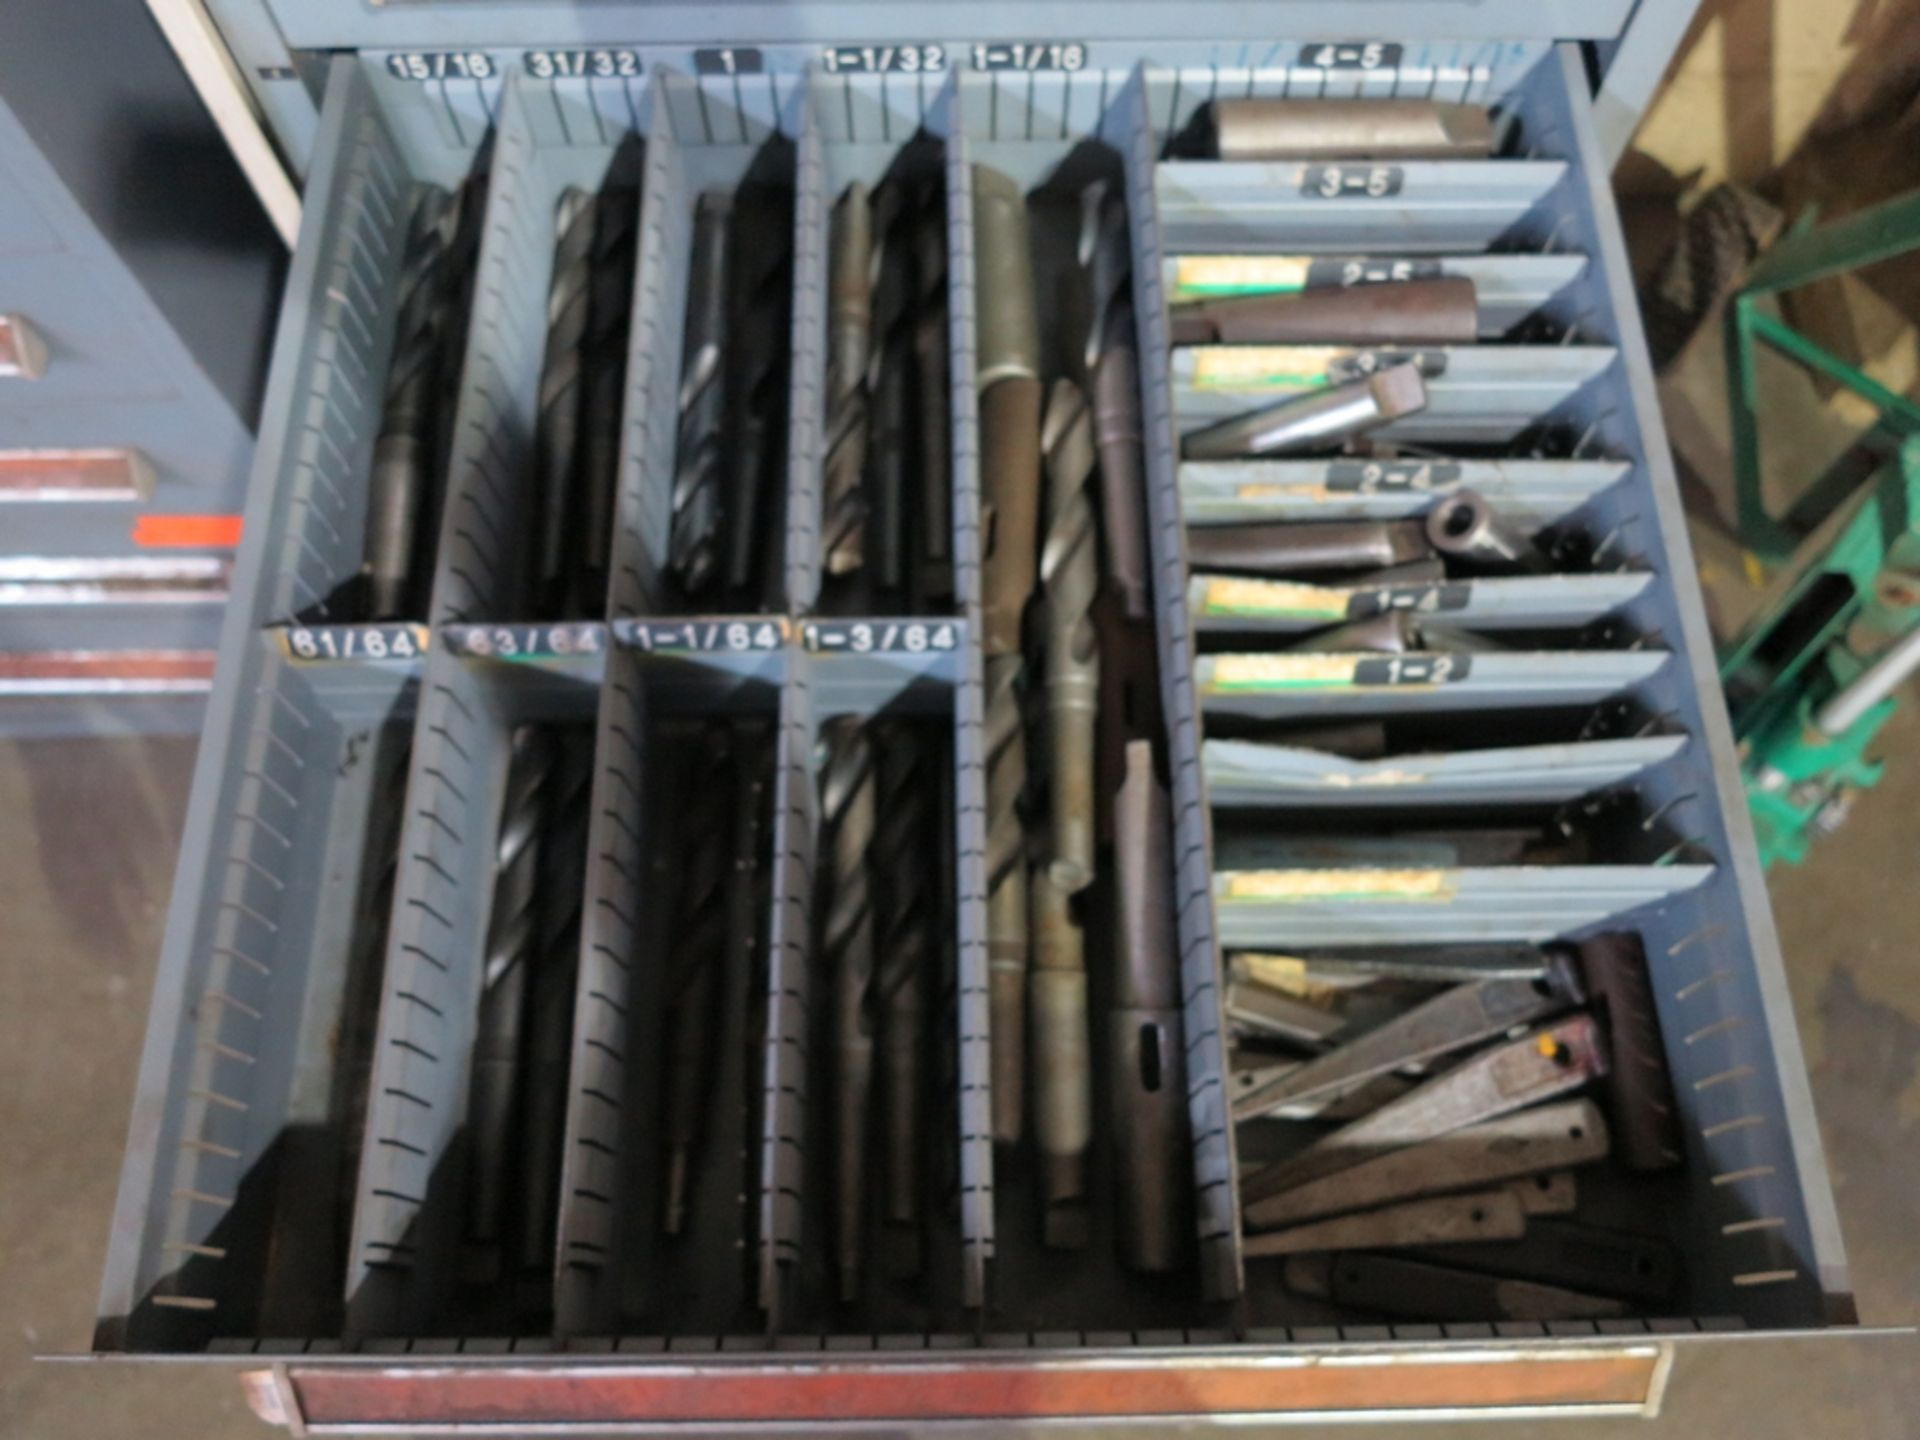 Lot 22 - STANLEY VIDMAR 9-DRAWER TOOL CABINET W/ CONTENTS OF TAPER DRILLS AND SLEEVES